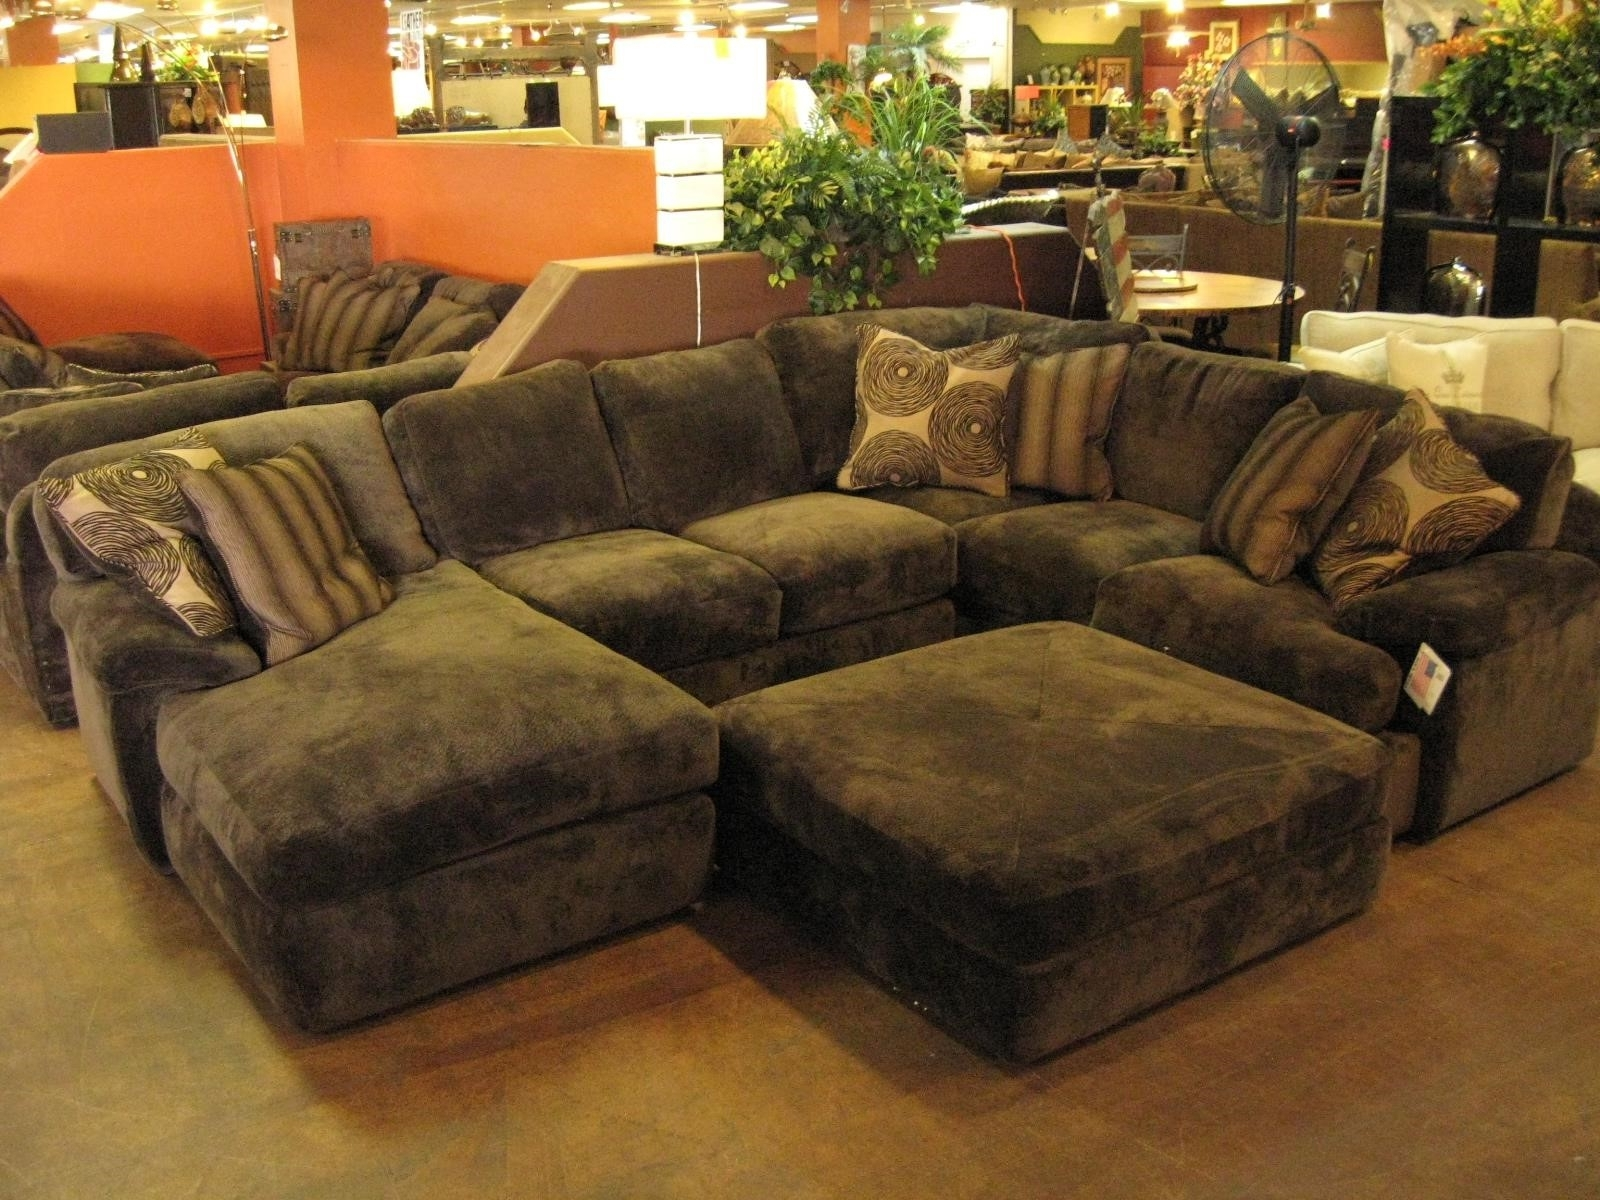 Most Popular Large Sectional Sofas With Regard To Sofa : Magnificent Large Sectional Sofa With Chaise Reclining (View 13 of 20)